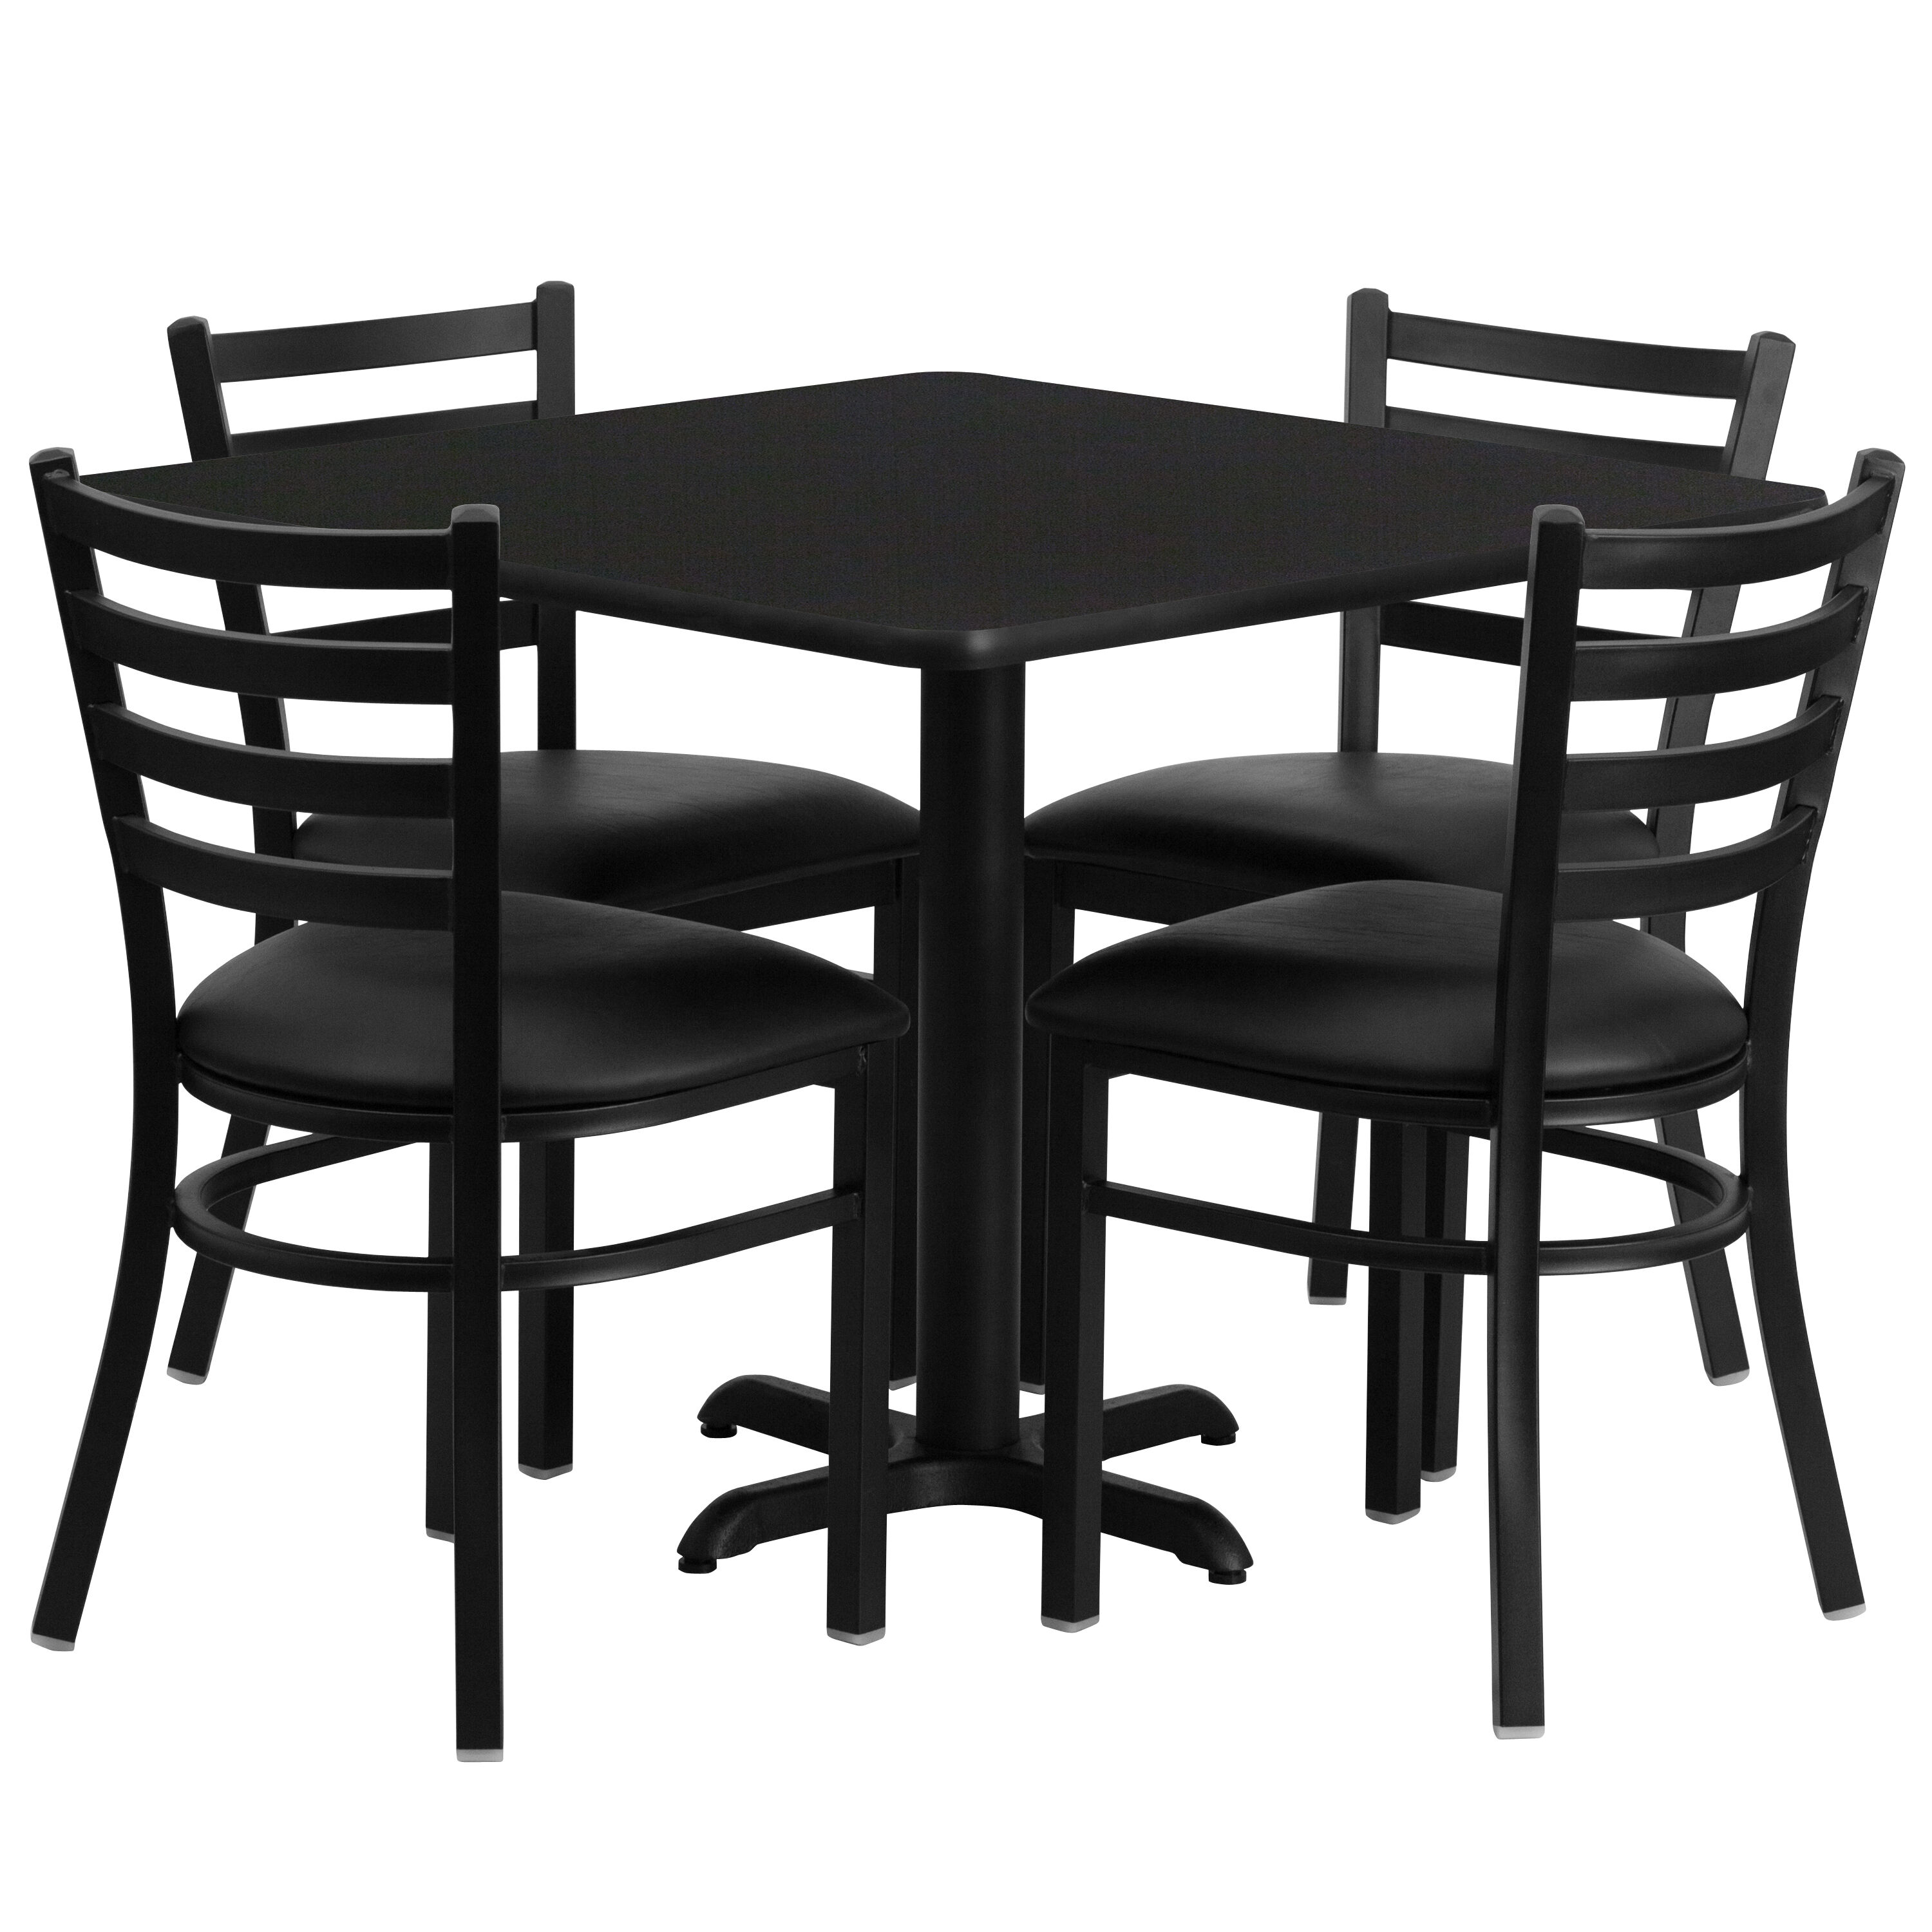 black table and chairs wicker porch chair cushions restaurantfurniture4less restaurant sets 36 square laminate set with x base 4 ladder back metal vinyl seat